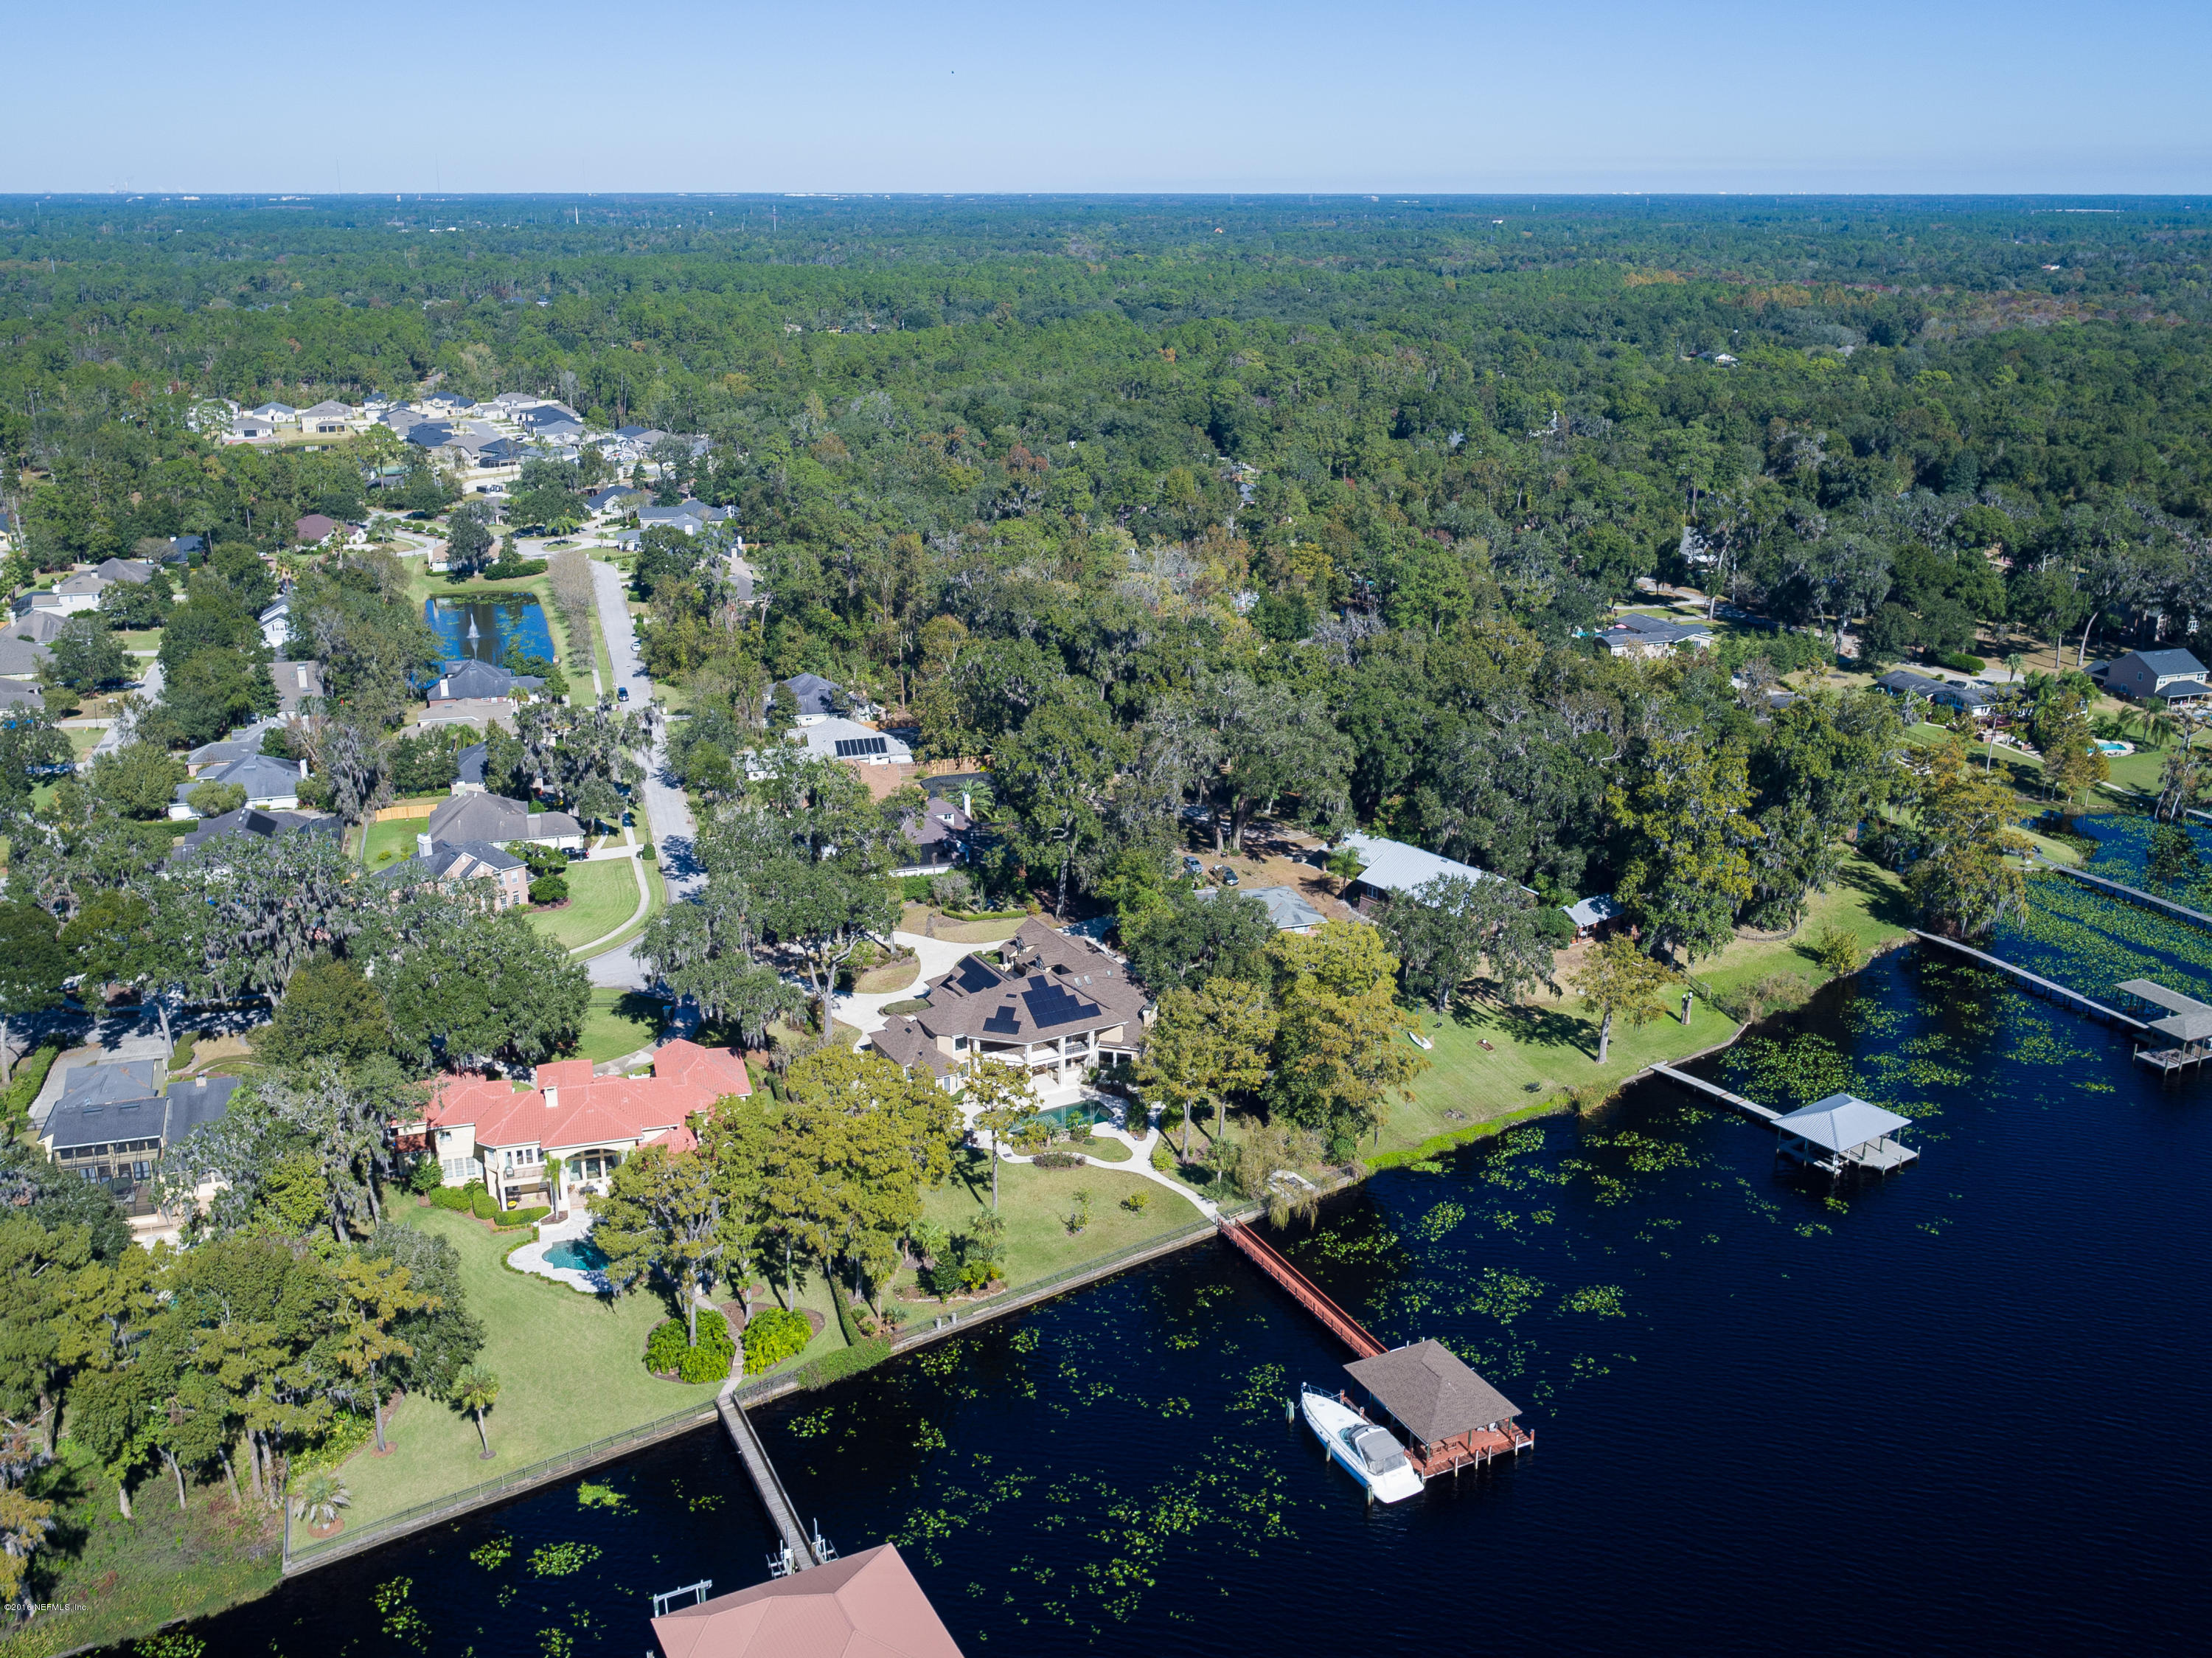 12799 CAMELLIA BAY, JACKSONVILLE, FLORIDA 32223, 6 Bedrooms Bedrooms, ,7 BathroomsBathrooms,Residential - single family,For sale,CAMELLIA BAY,856712